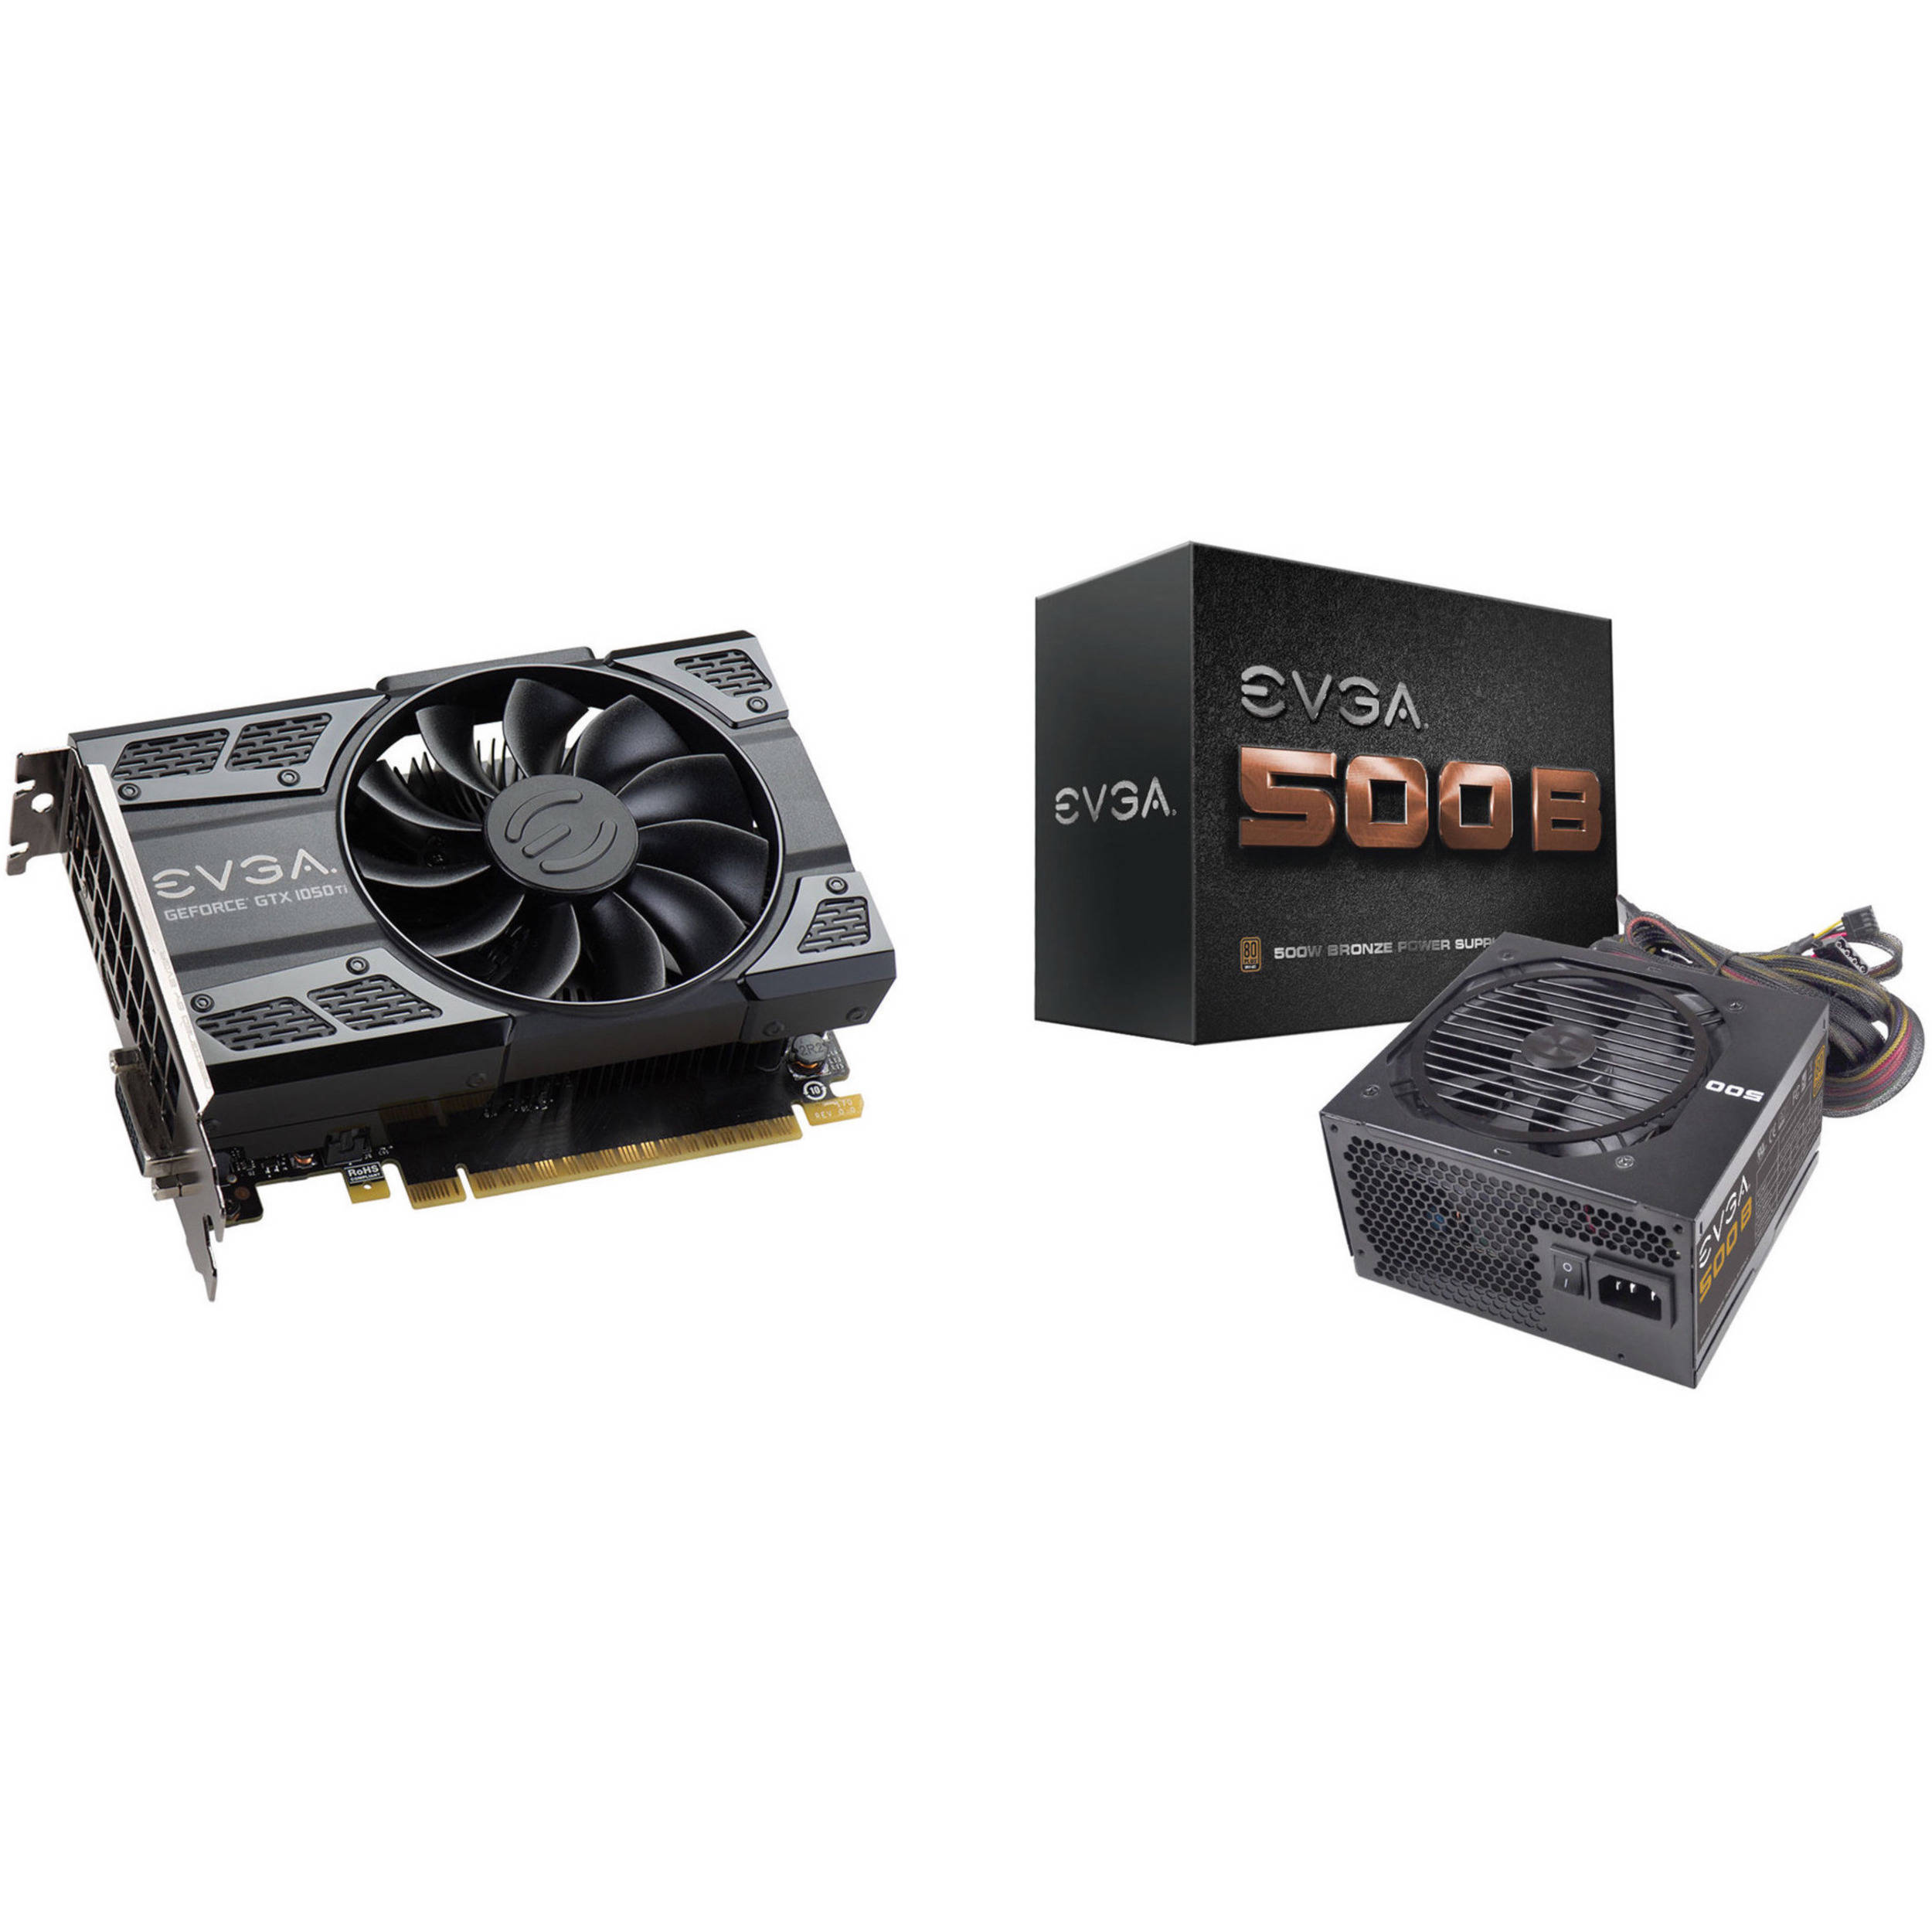 Https C Product 1412542 Reg Installing Electric Fan On A C3 Evga Geforce Gtx 1050 Ti 1436925